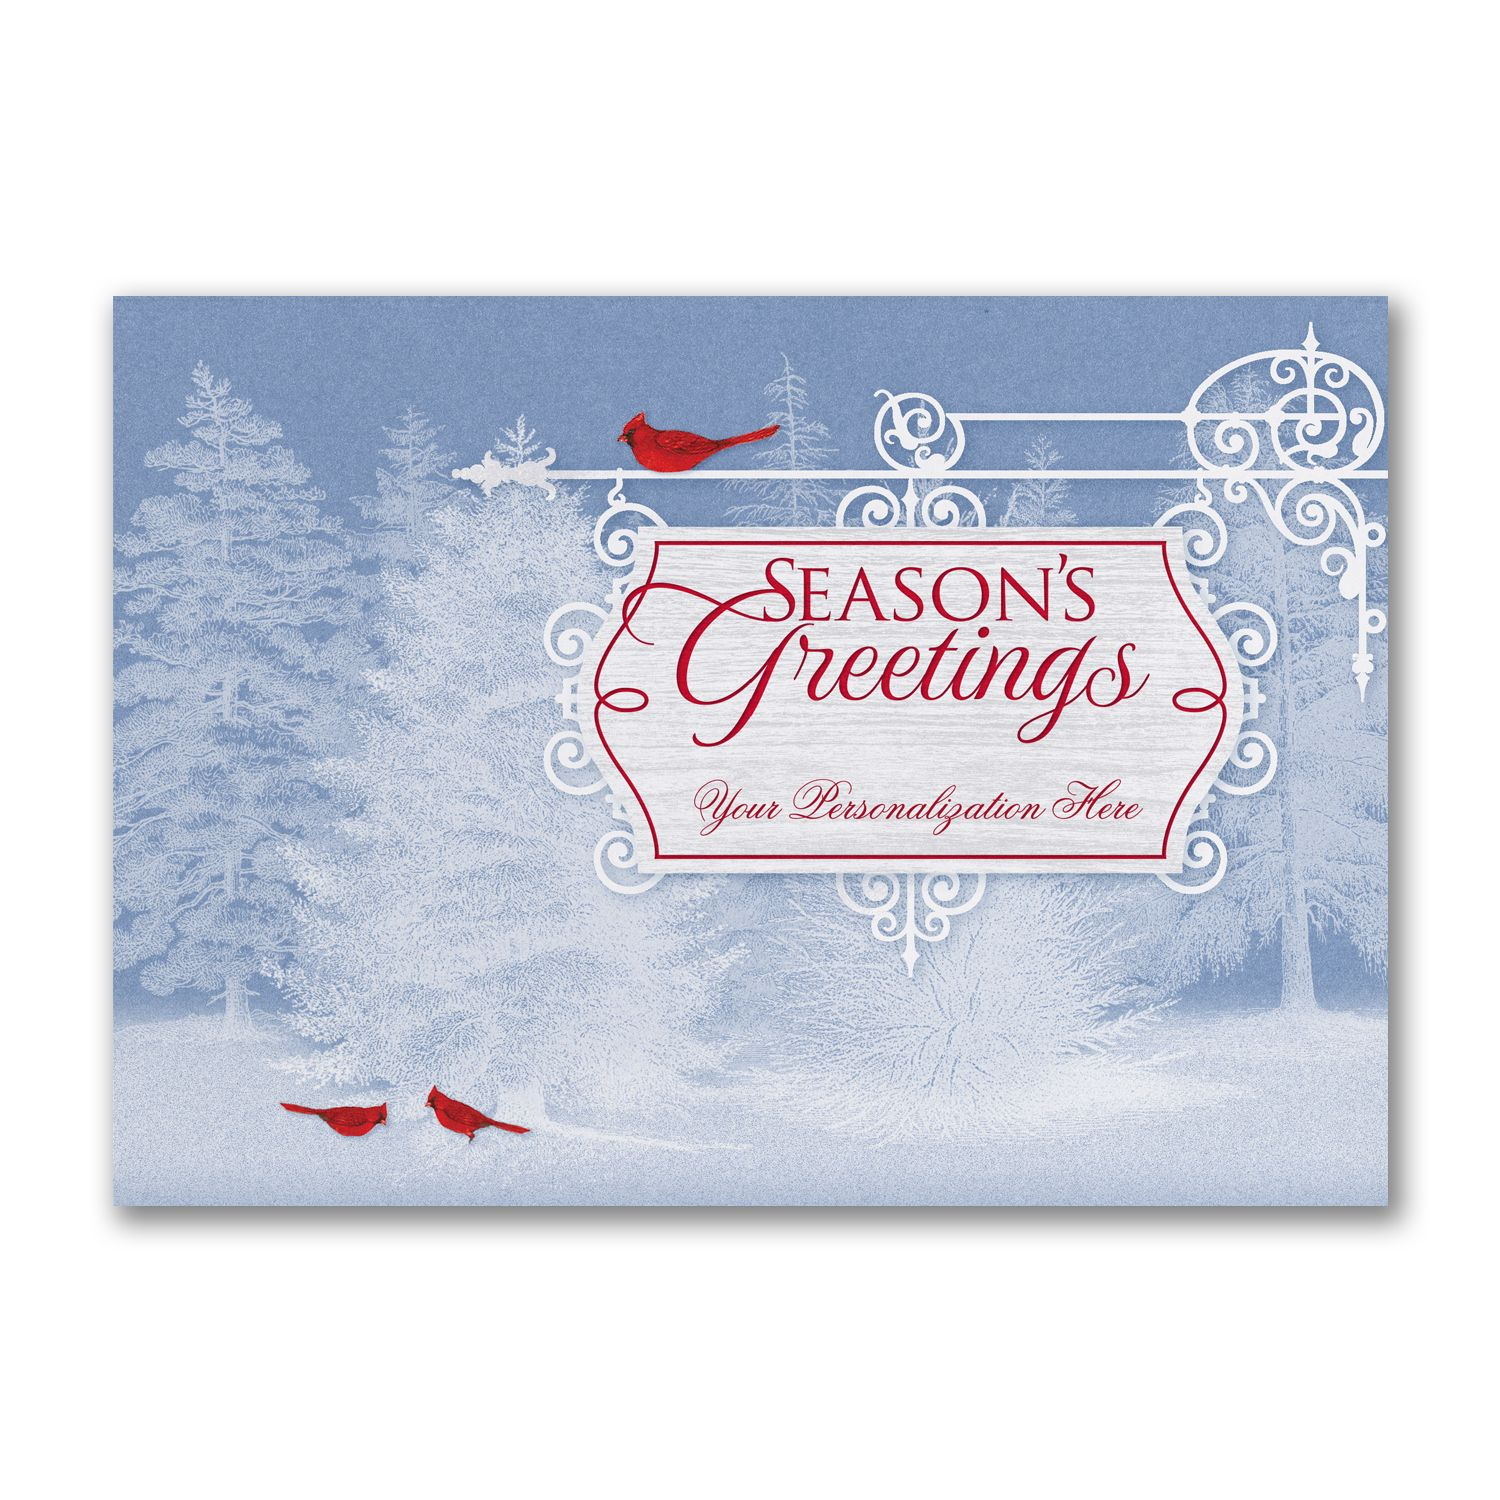 Beautiful scenery holiday cards httppartyblockinvitations a card with snowy pine trees and red cardinals make a beautiful scene while your personalization is showcased on a seasons greetings plaque monicamarmolfo Choice Image